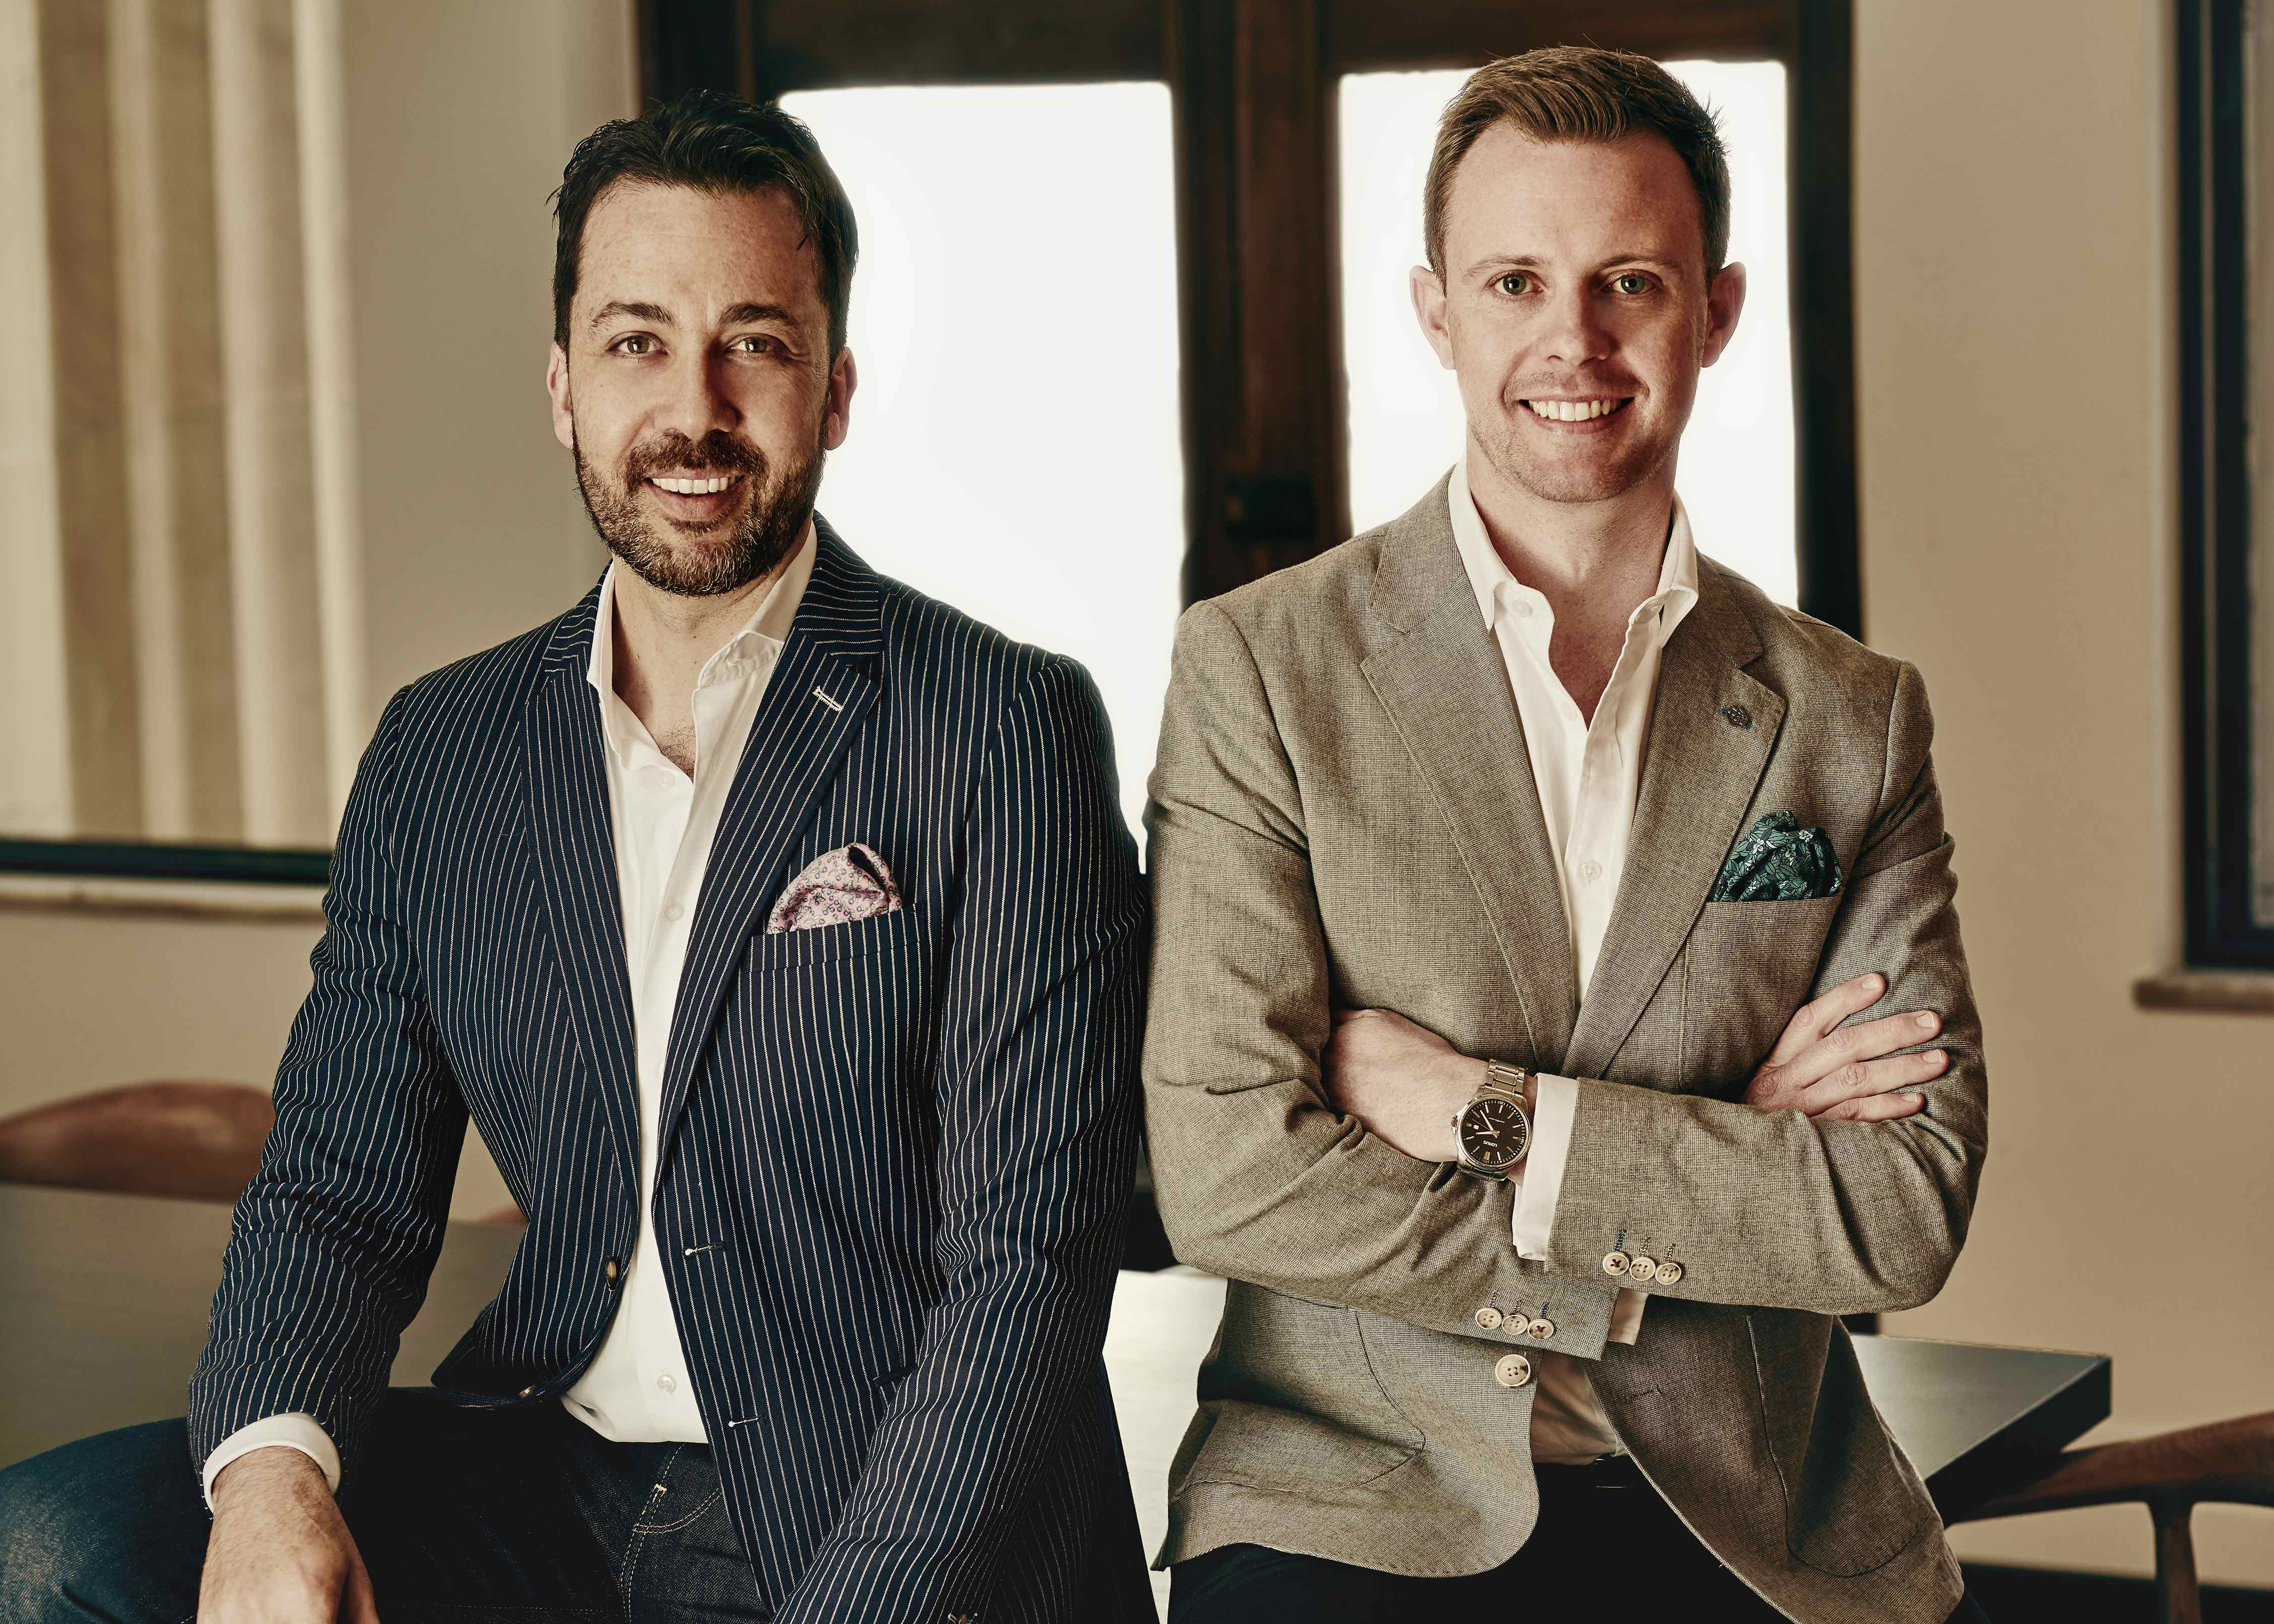 René Migliore and Todd Baker take the reins as joint MD's at 303 MullenLowe Perth